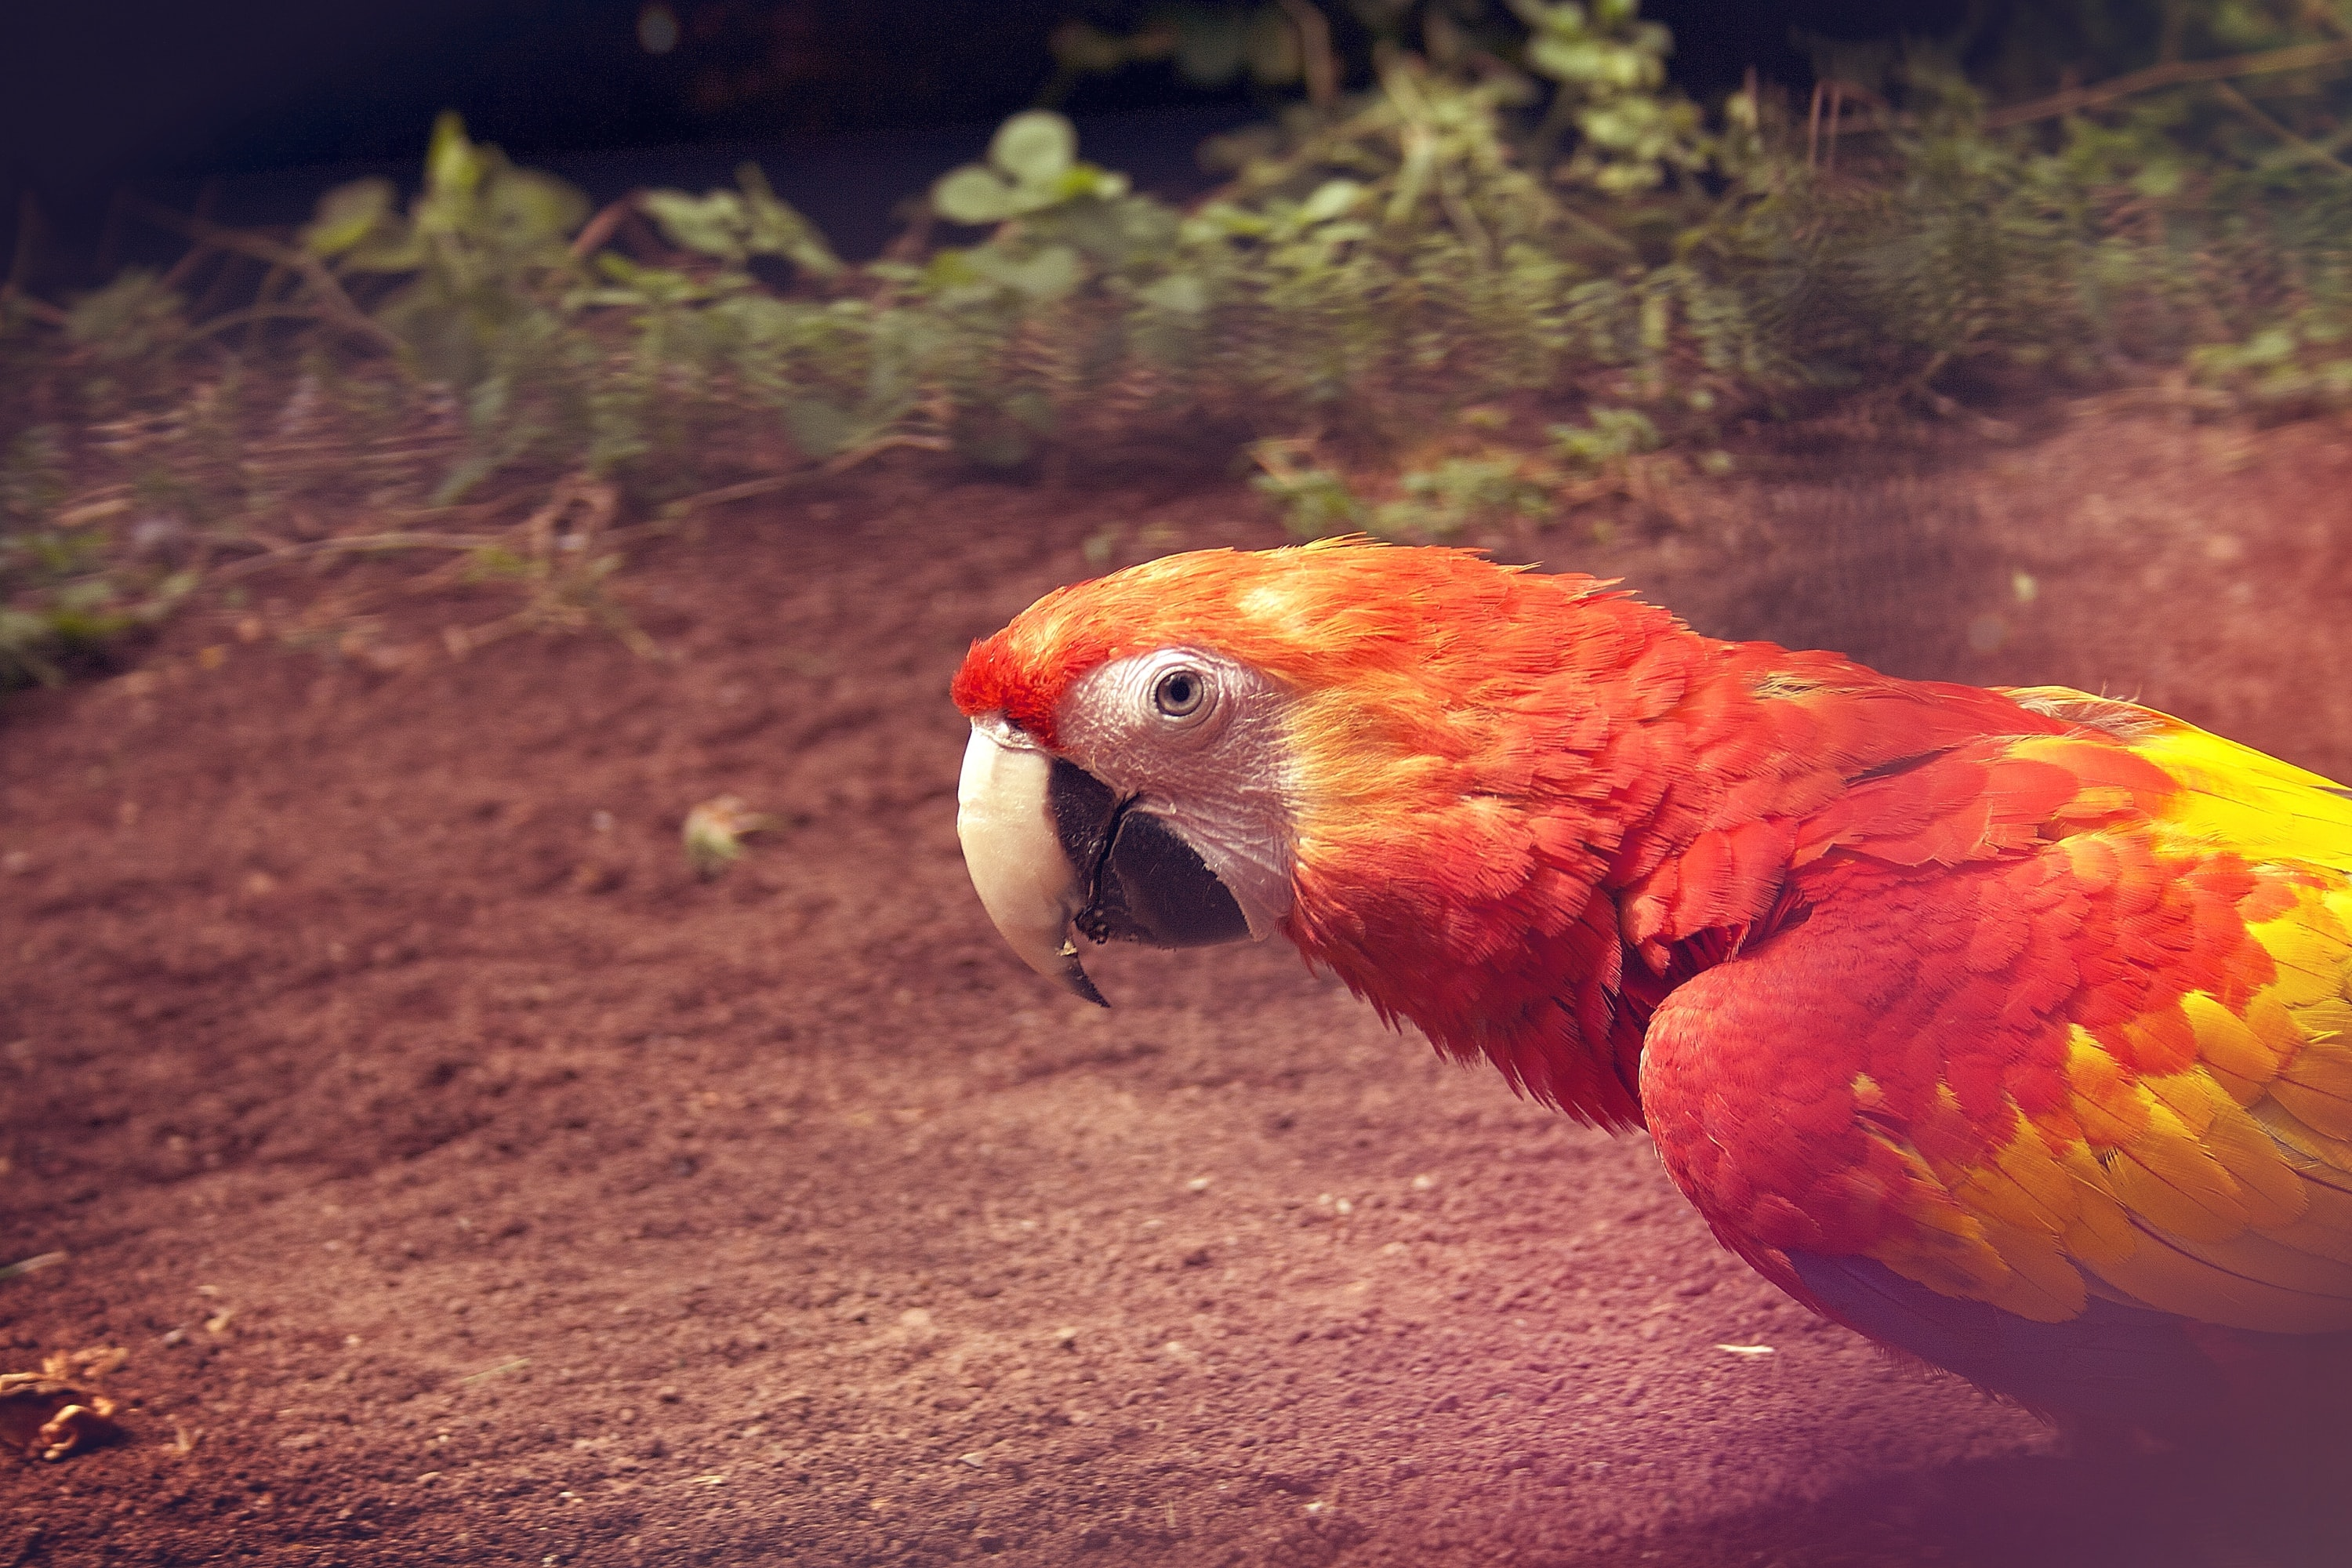 closeup photography of yellow and red parrot on brown soil